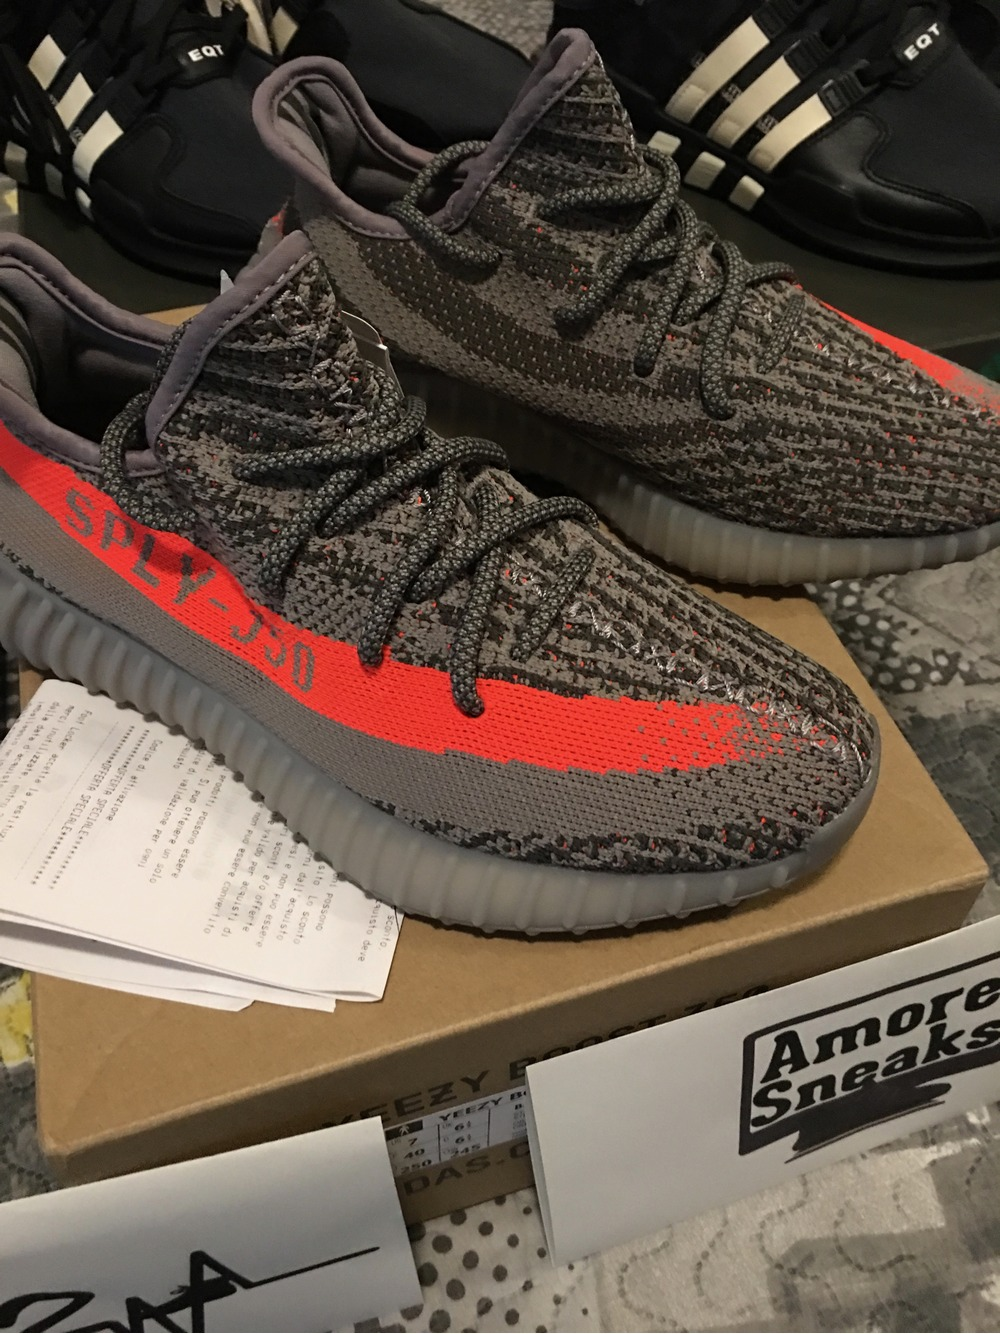 Cheap Yeezy Boost 350 V2 Black, Yeezy 350 Black Sale 2017